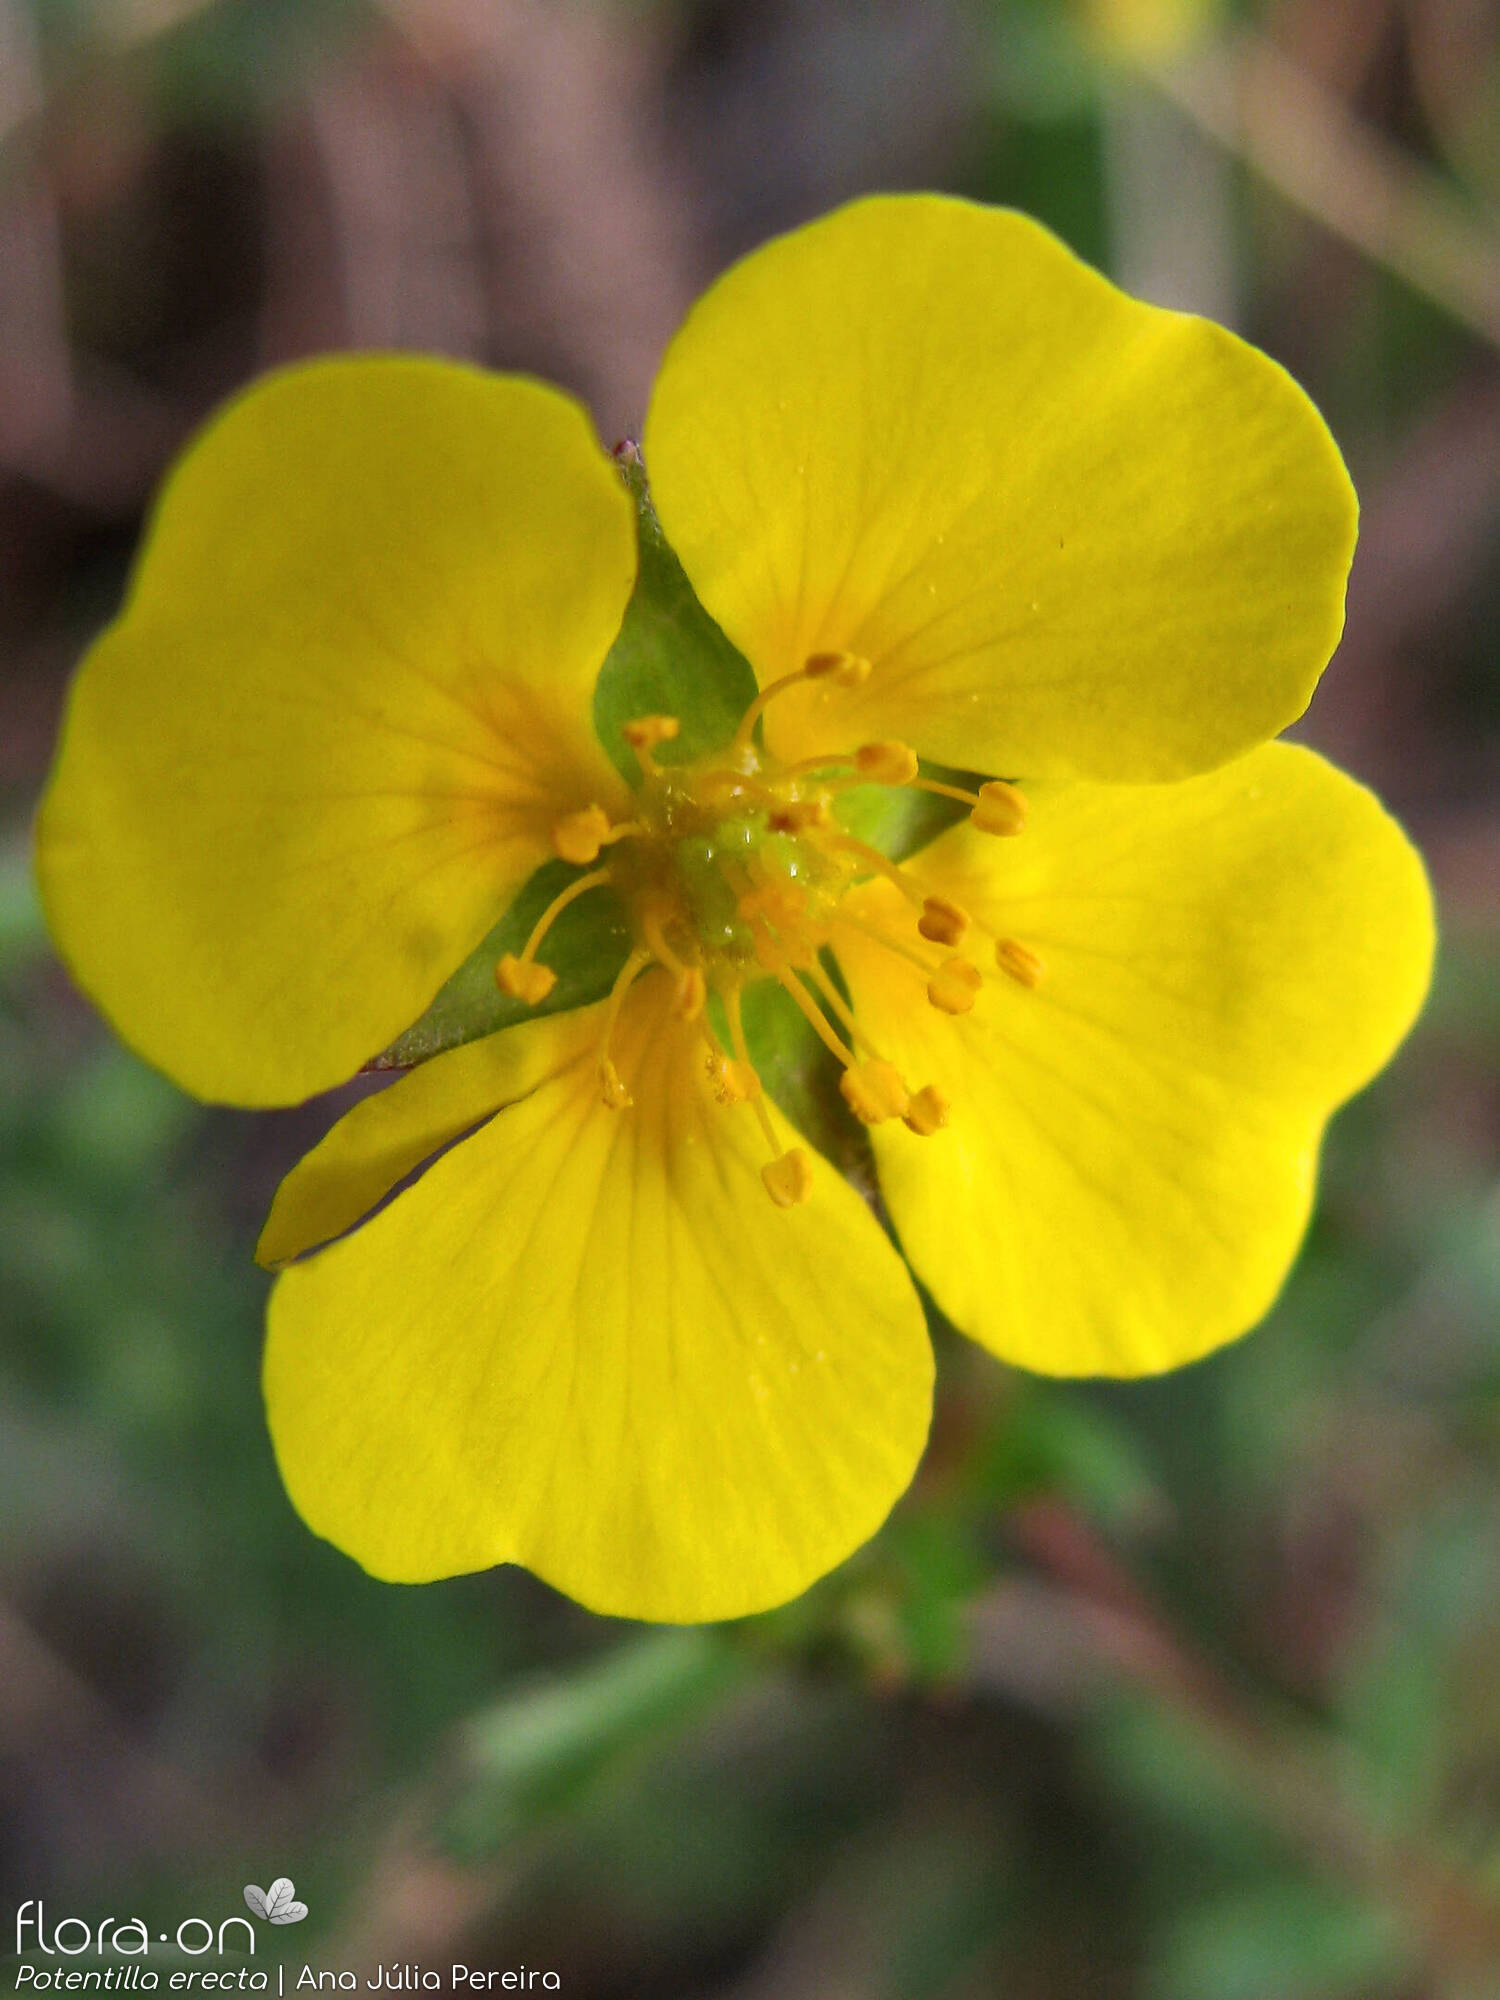 Potentilla erecta - Flor (close-up) | Ana Júlia Pereira; CC BY-NC 4.0